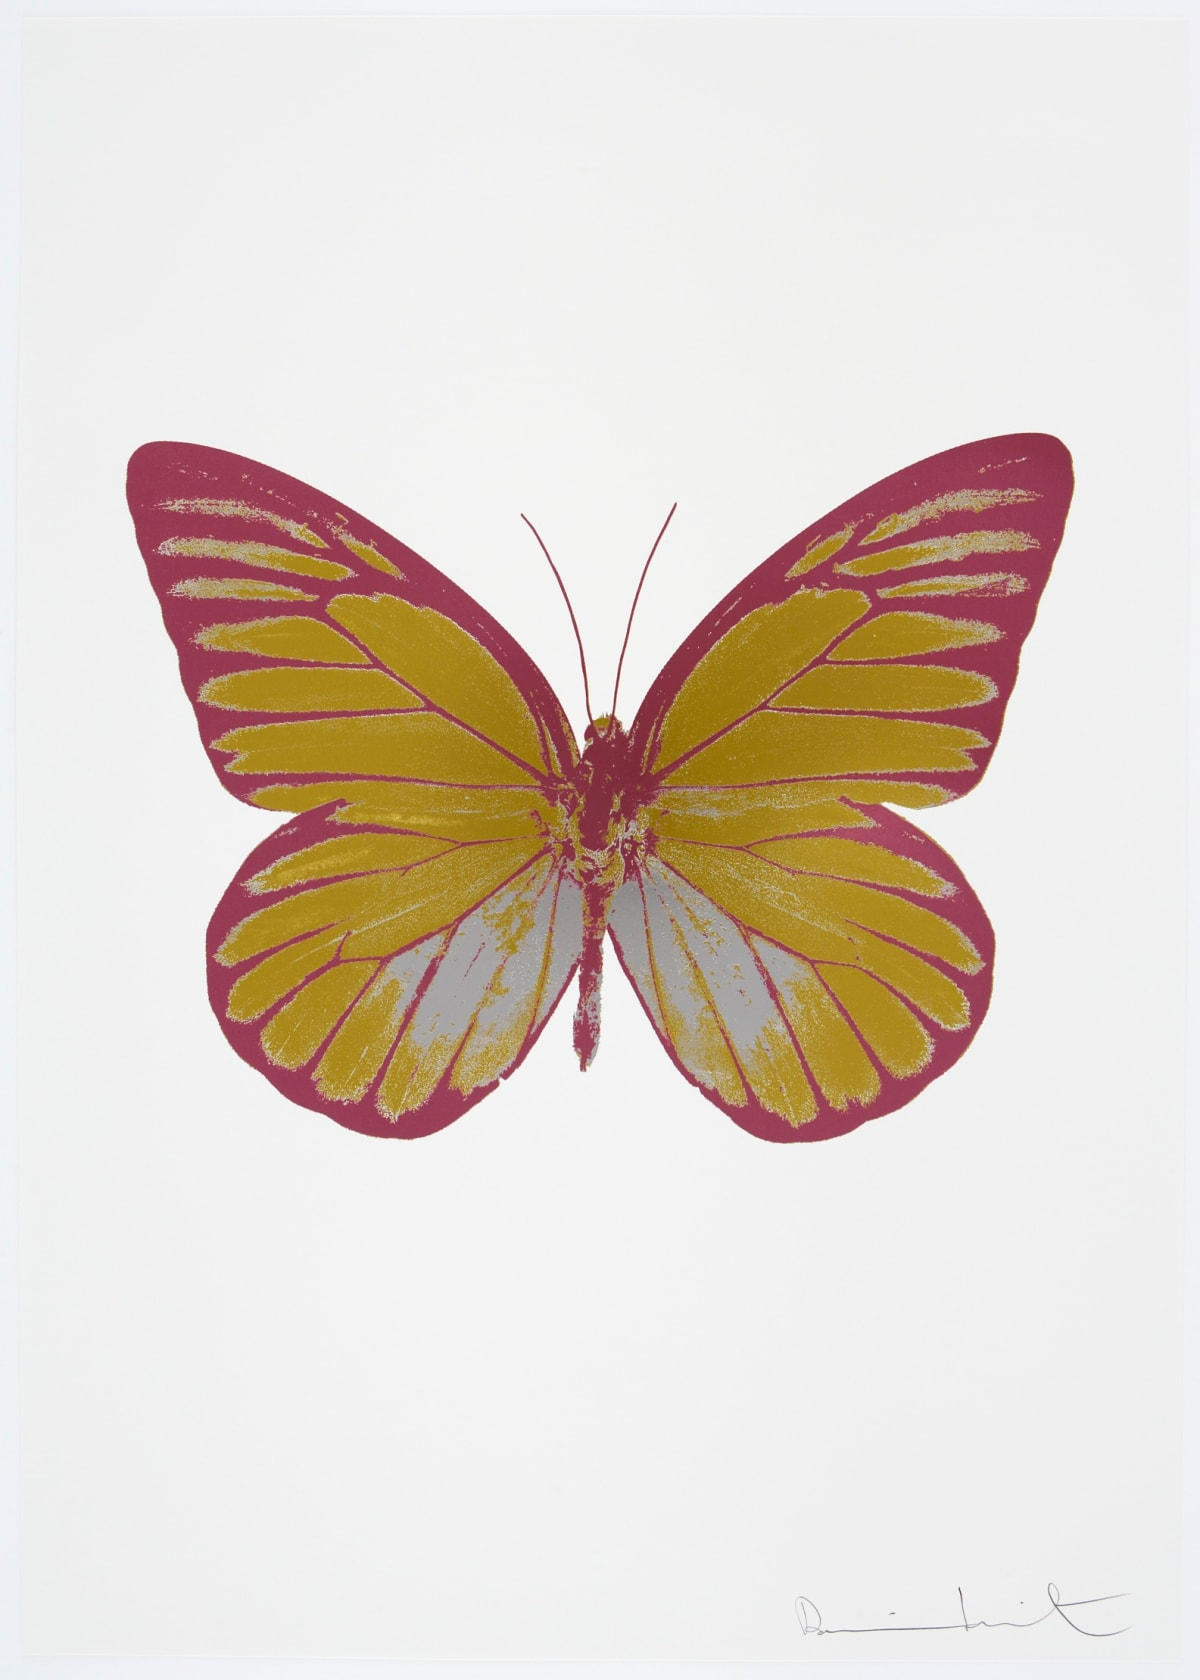 Damien Hirst The Souls I - Oriental Gold/Silver Gloss/Loganberry Pink, 2010 3 colour foil block on 300gsm Arches 88 archival paper. Signed and numbered. Published by Paul Stolper and Other Criteria 72 x 51cm OC7750 / 659-13 Edition of 15